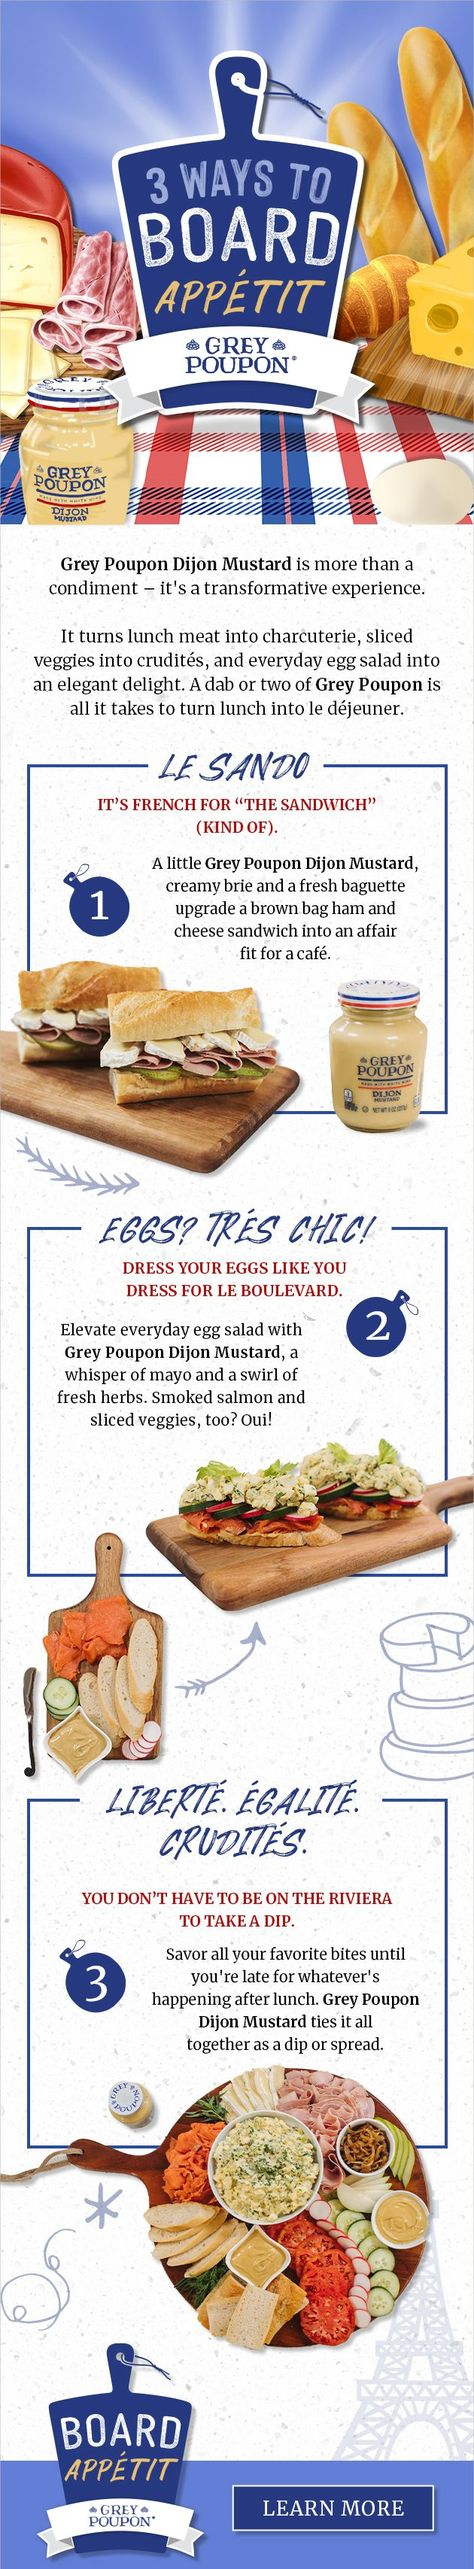 #ad Turn an everyday lunch into a special meal you can savor with Grey Poupon! Sponsored by Grey Poupon